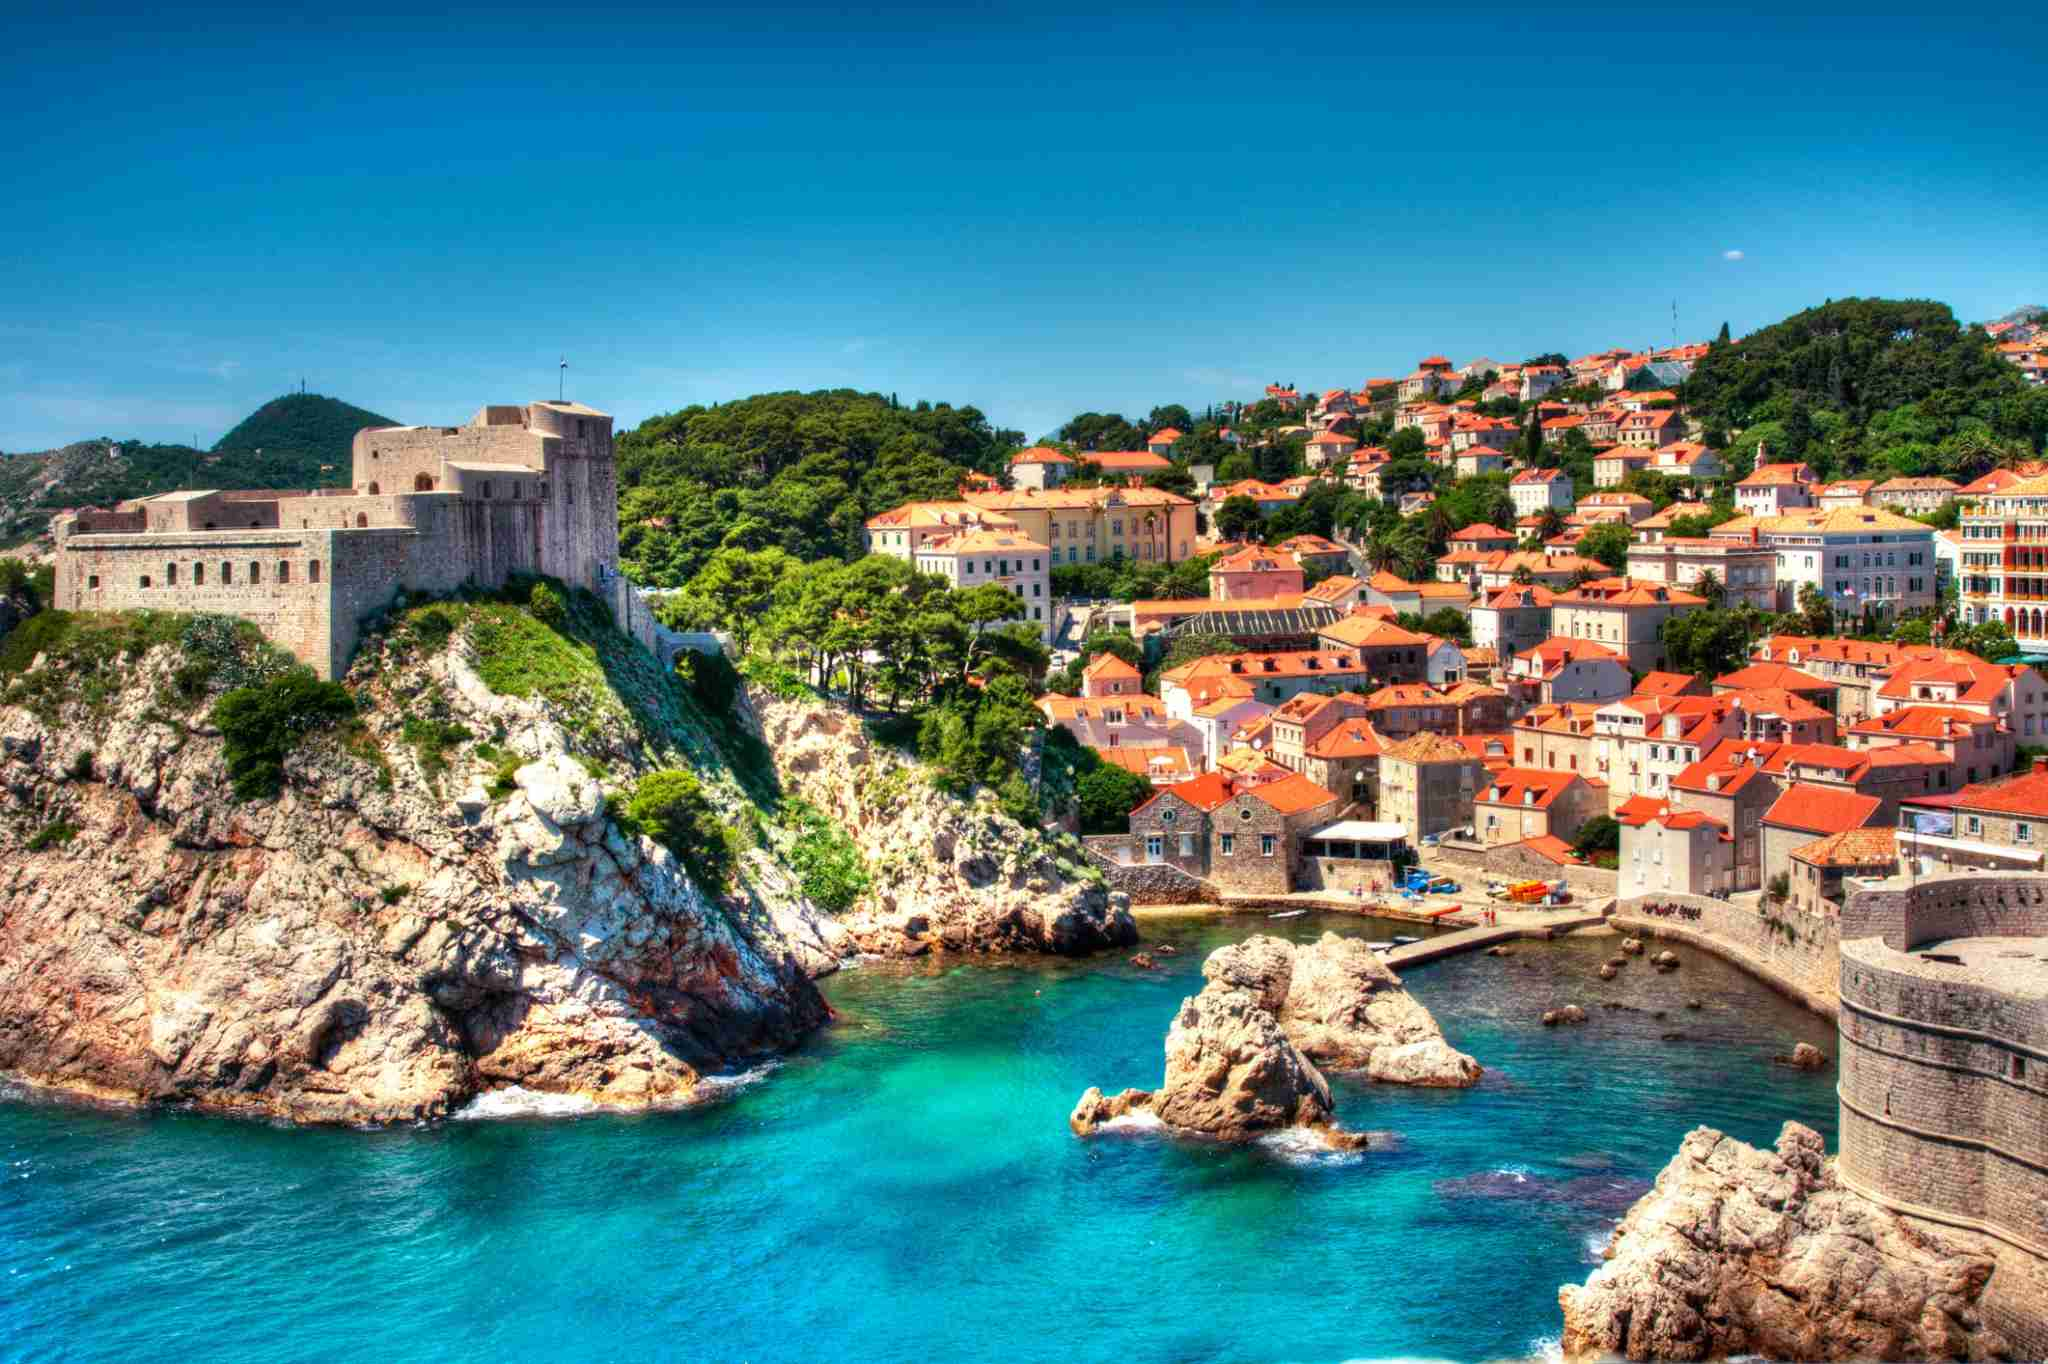 Dubrovnik, anyone? (Photo by Samantha T. Photography / Getty Images)